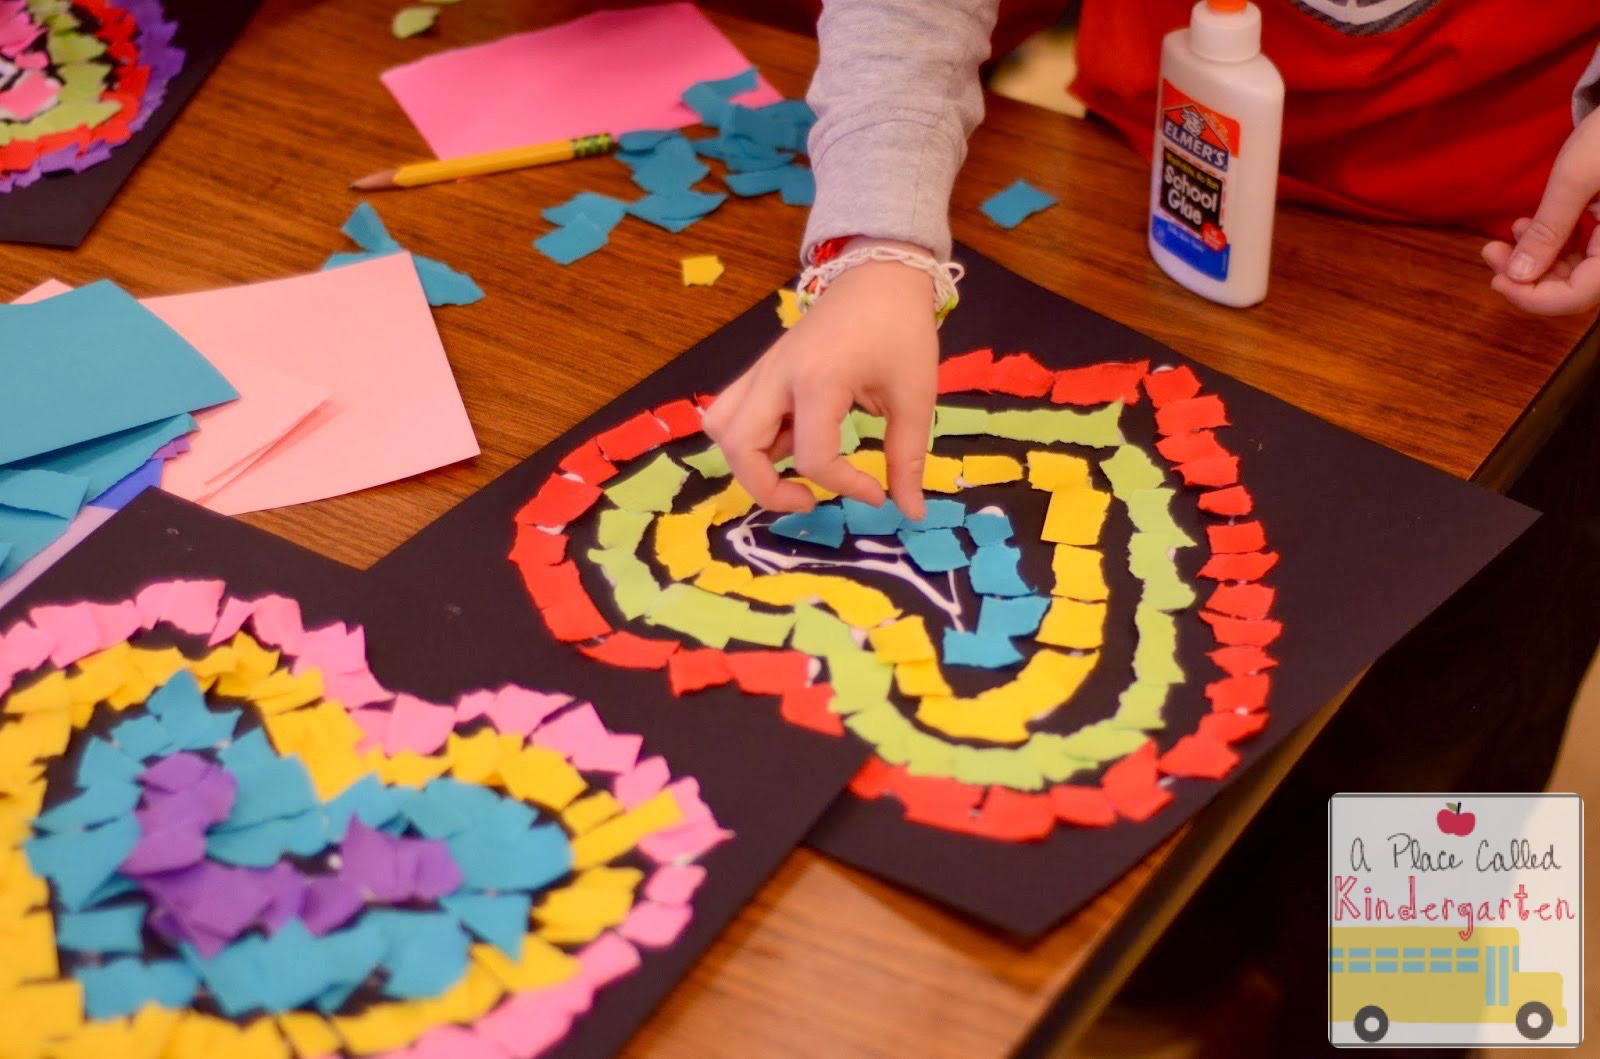 Kindergarten valentine craft ideas - A Place Called Kindergarten My Favorite Valentine Crafts You Don T Want To Miss